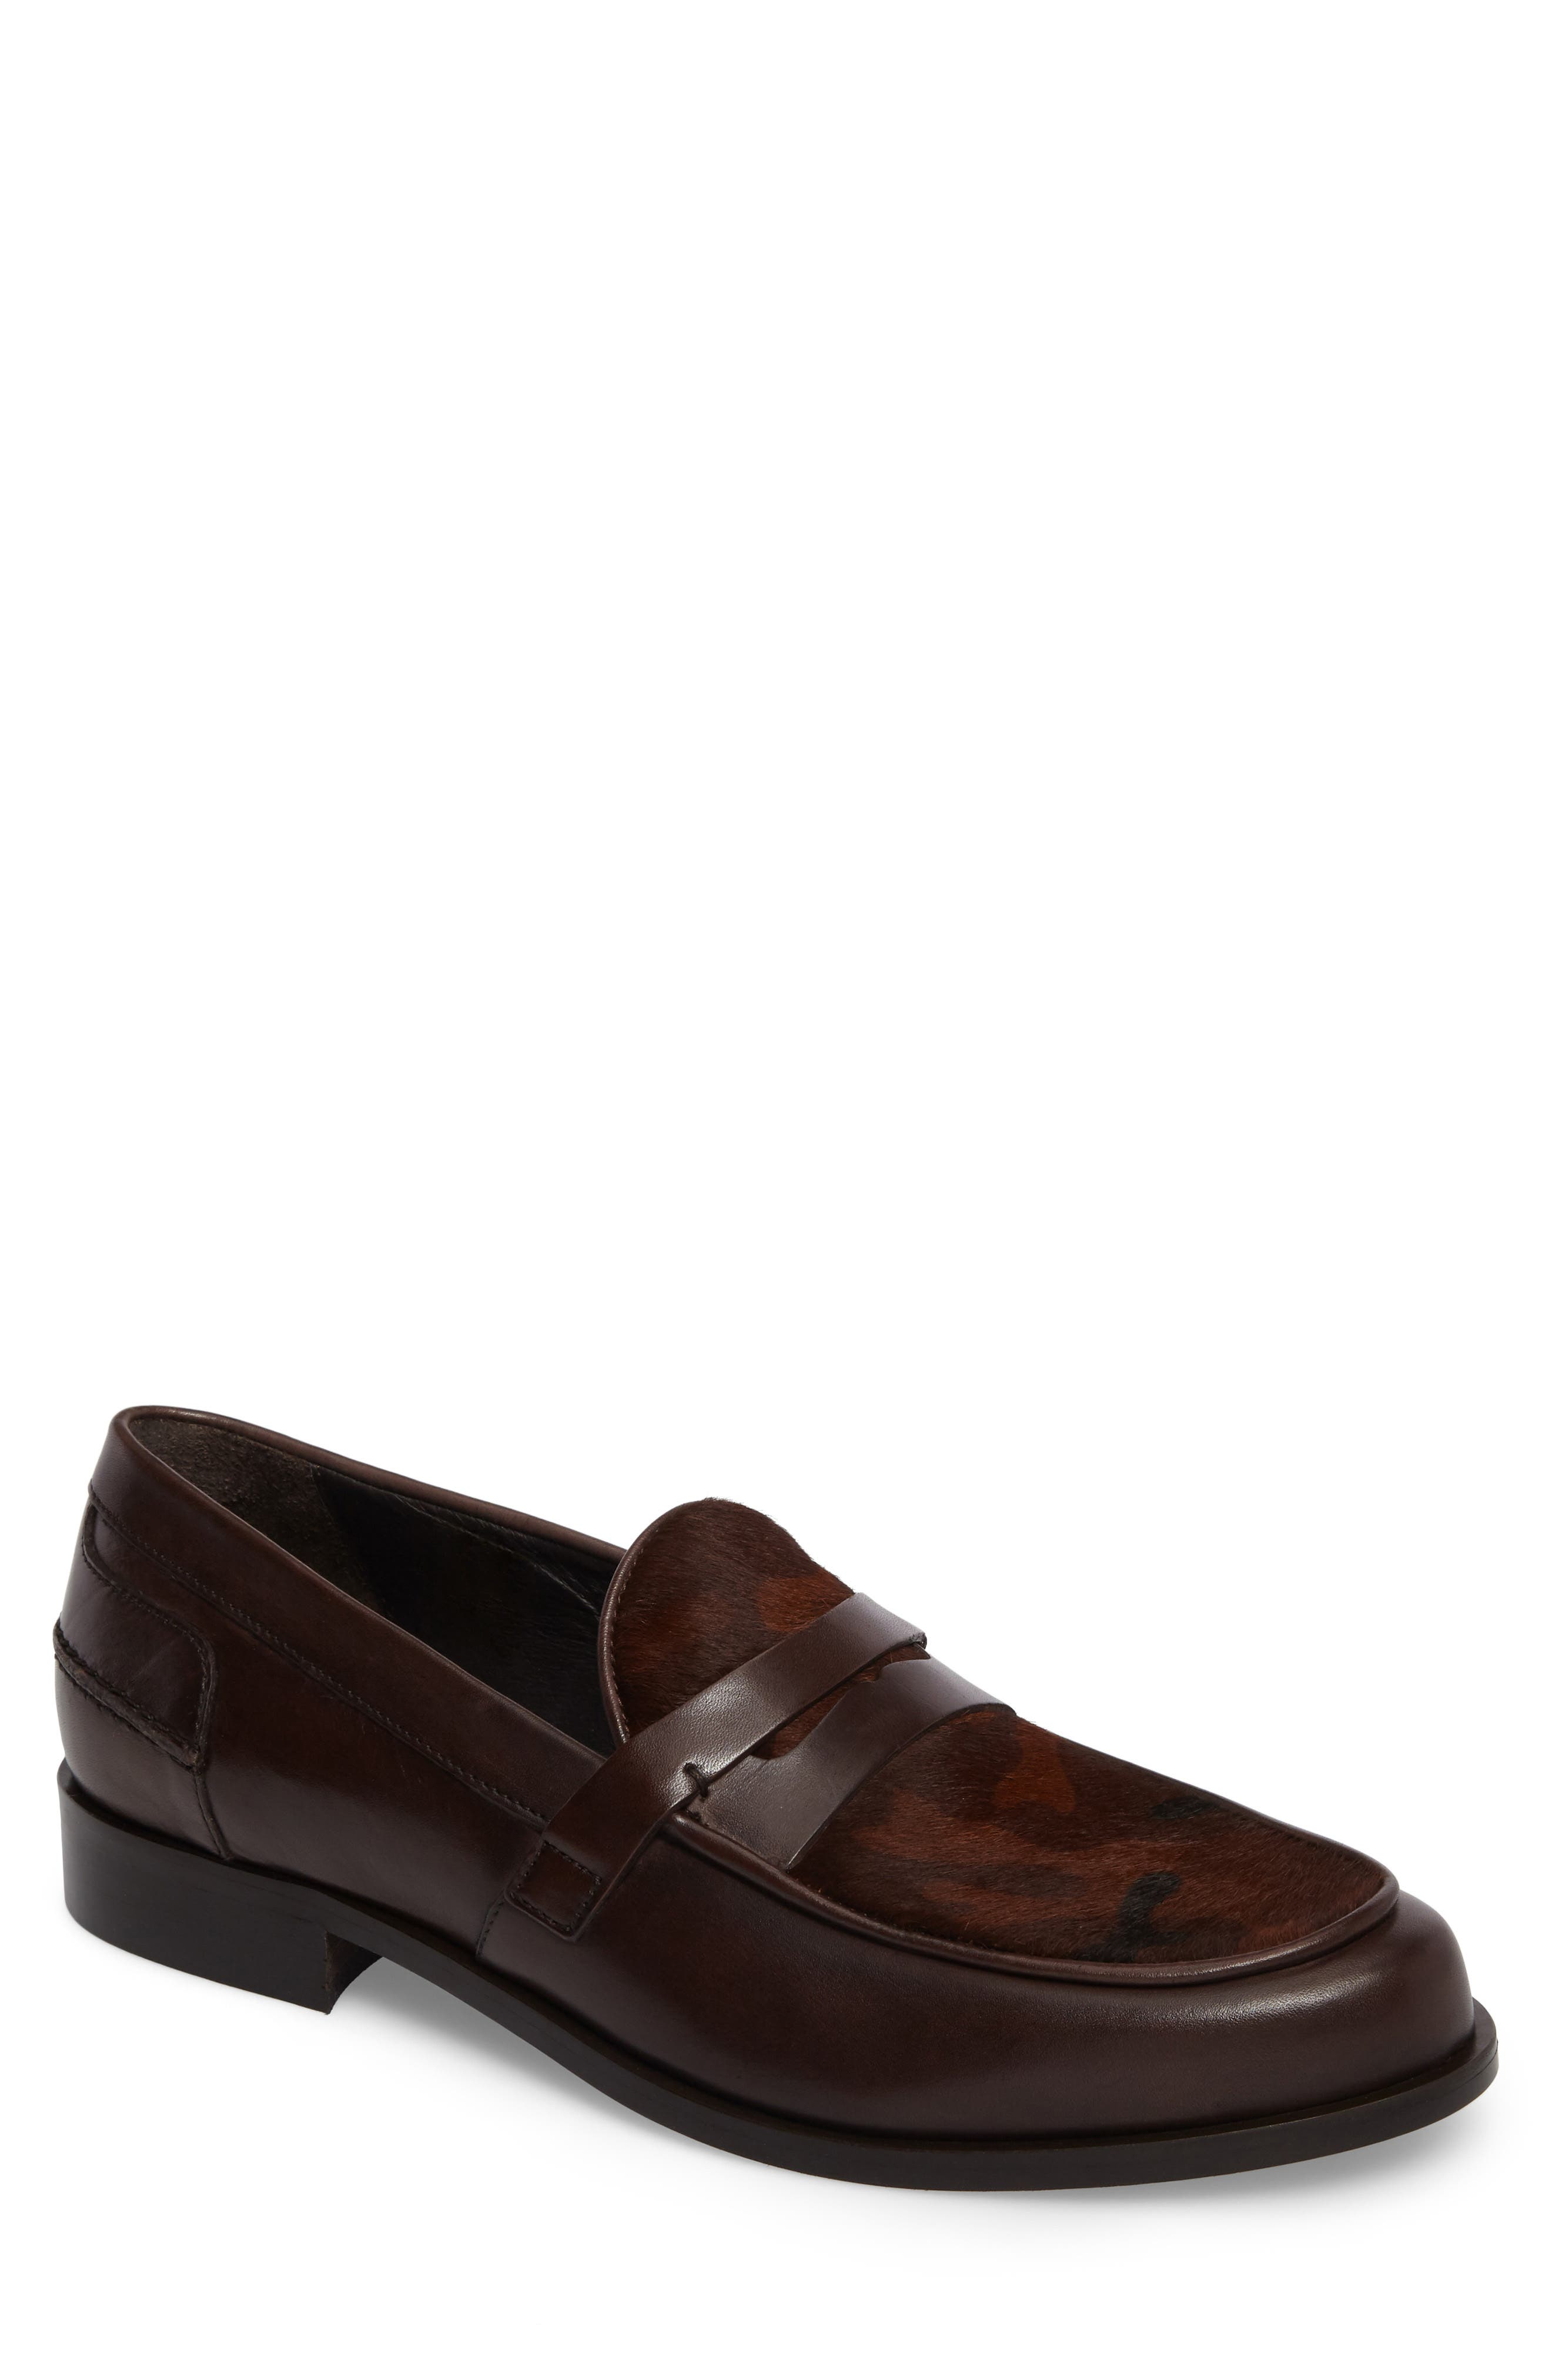 Alternate Image 1 Selected - Donald J Pliner Sawyer Penny Loafer (Men)